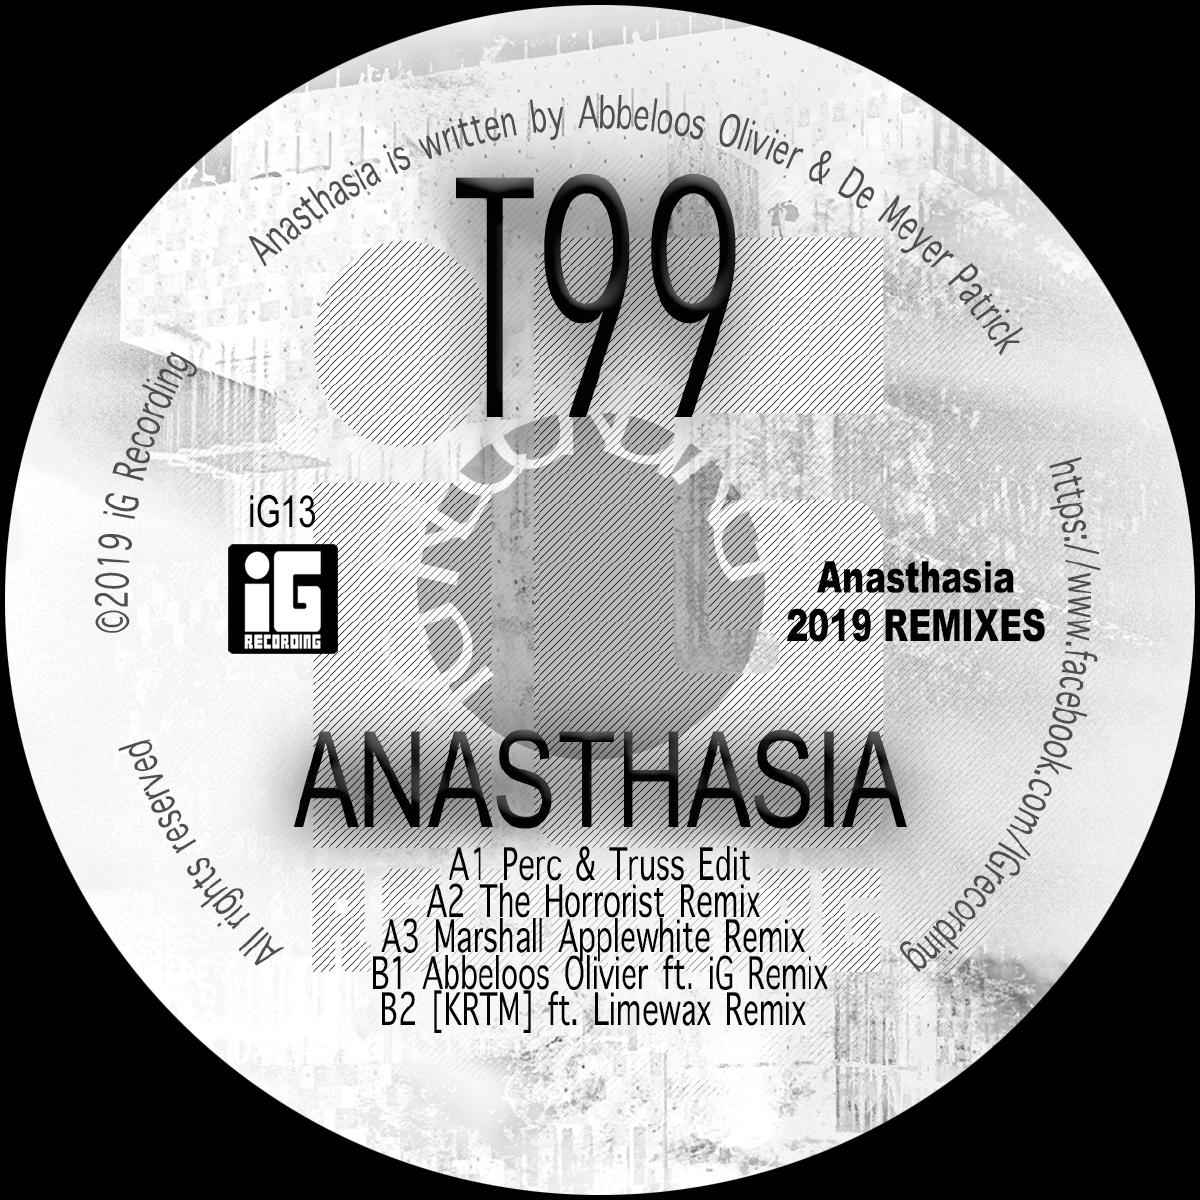 T99/ANASTHASIA (2019 REMIXES) 12""